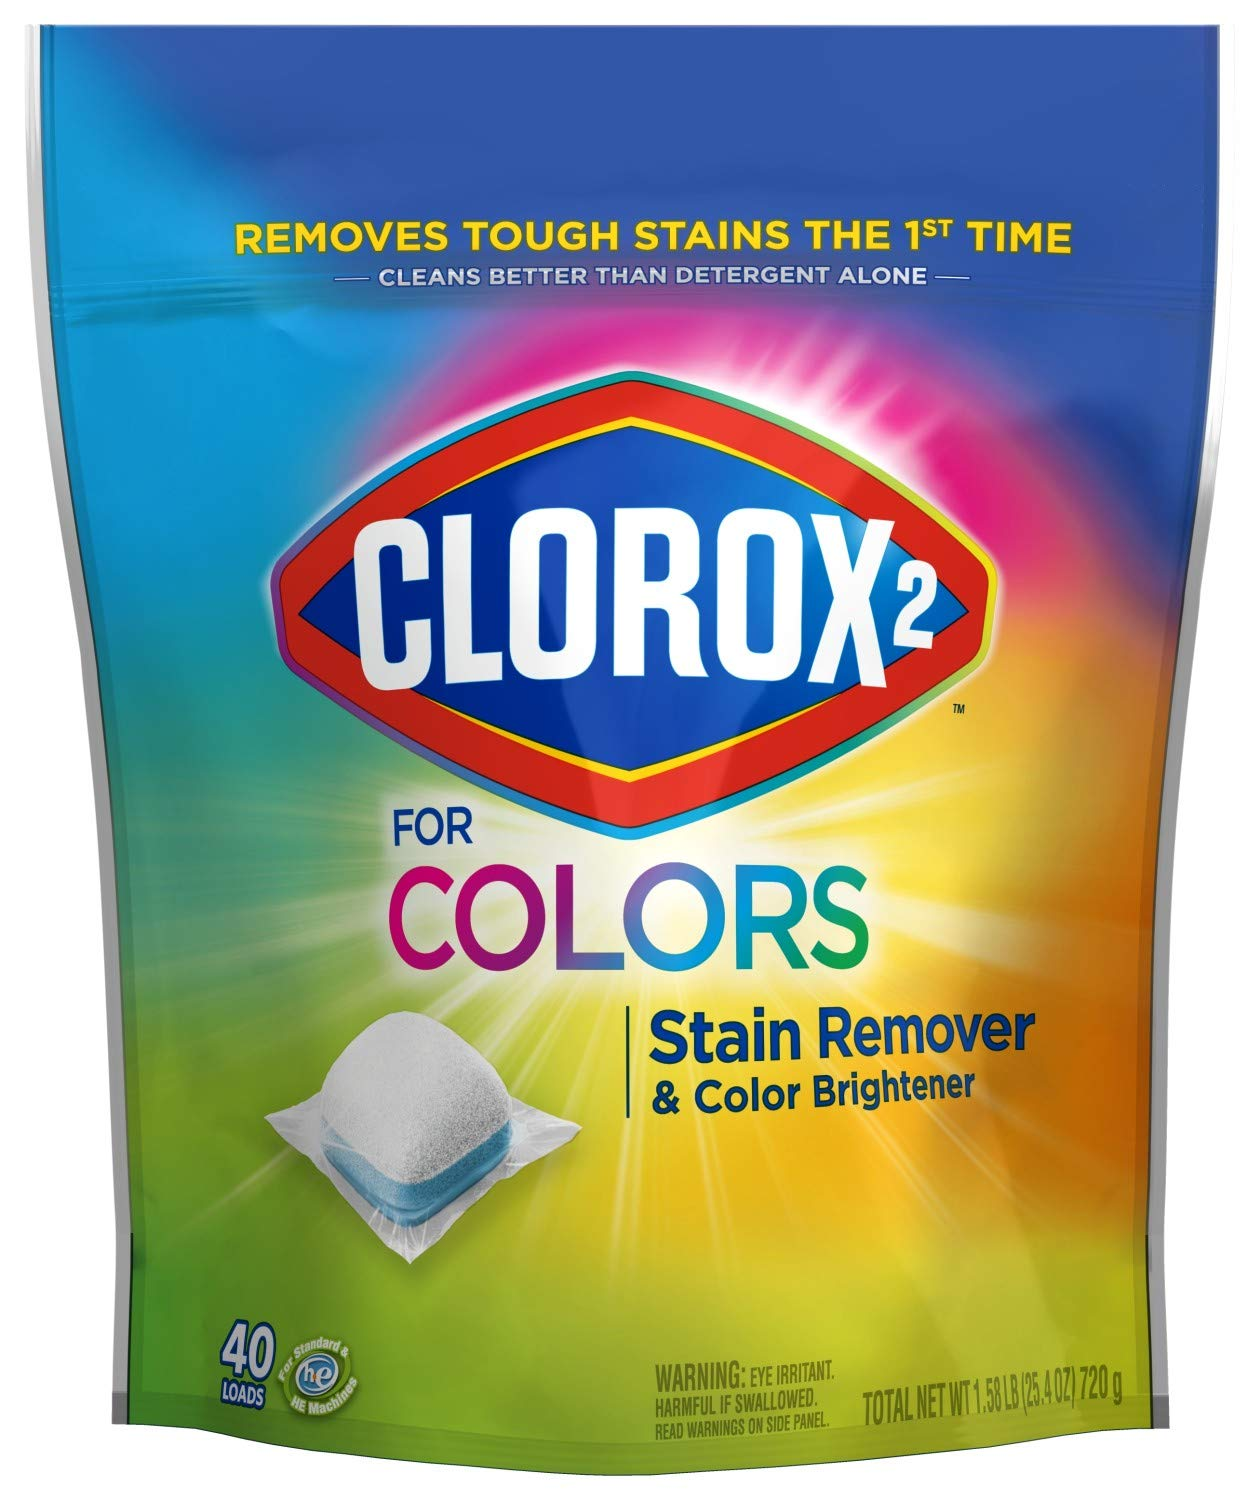 Clorox 2 Laundry Stain Remover and Color Booster Packs, Laundry Packs, 40 Count